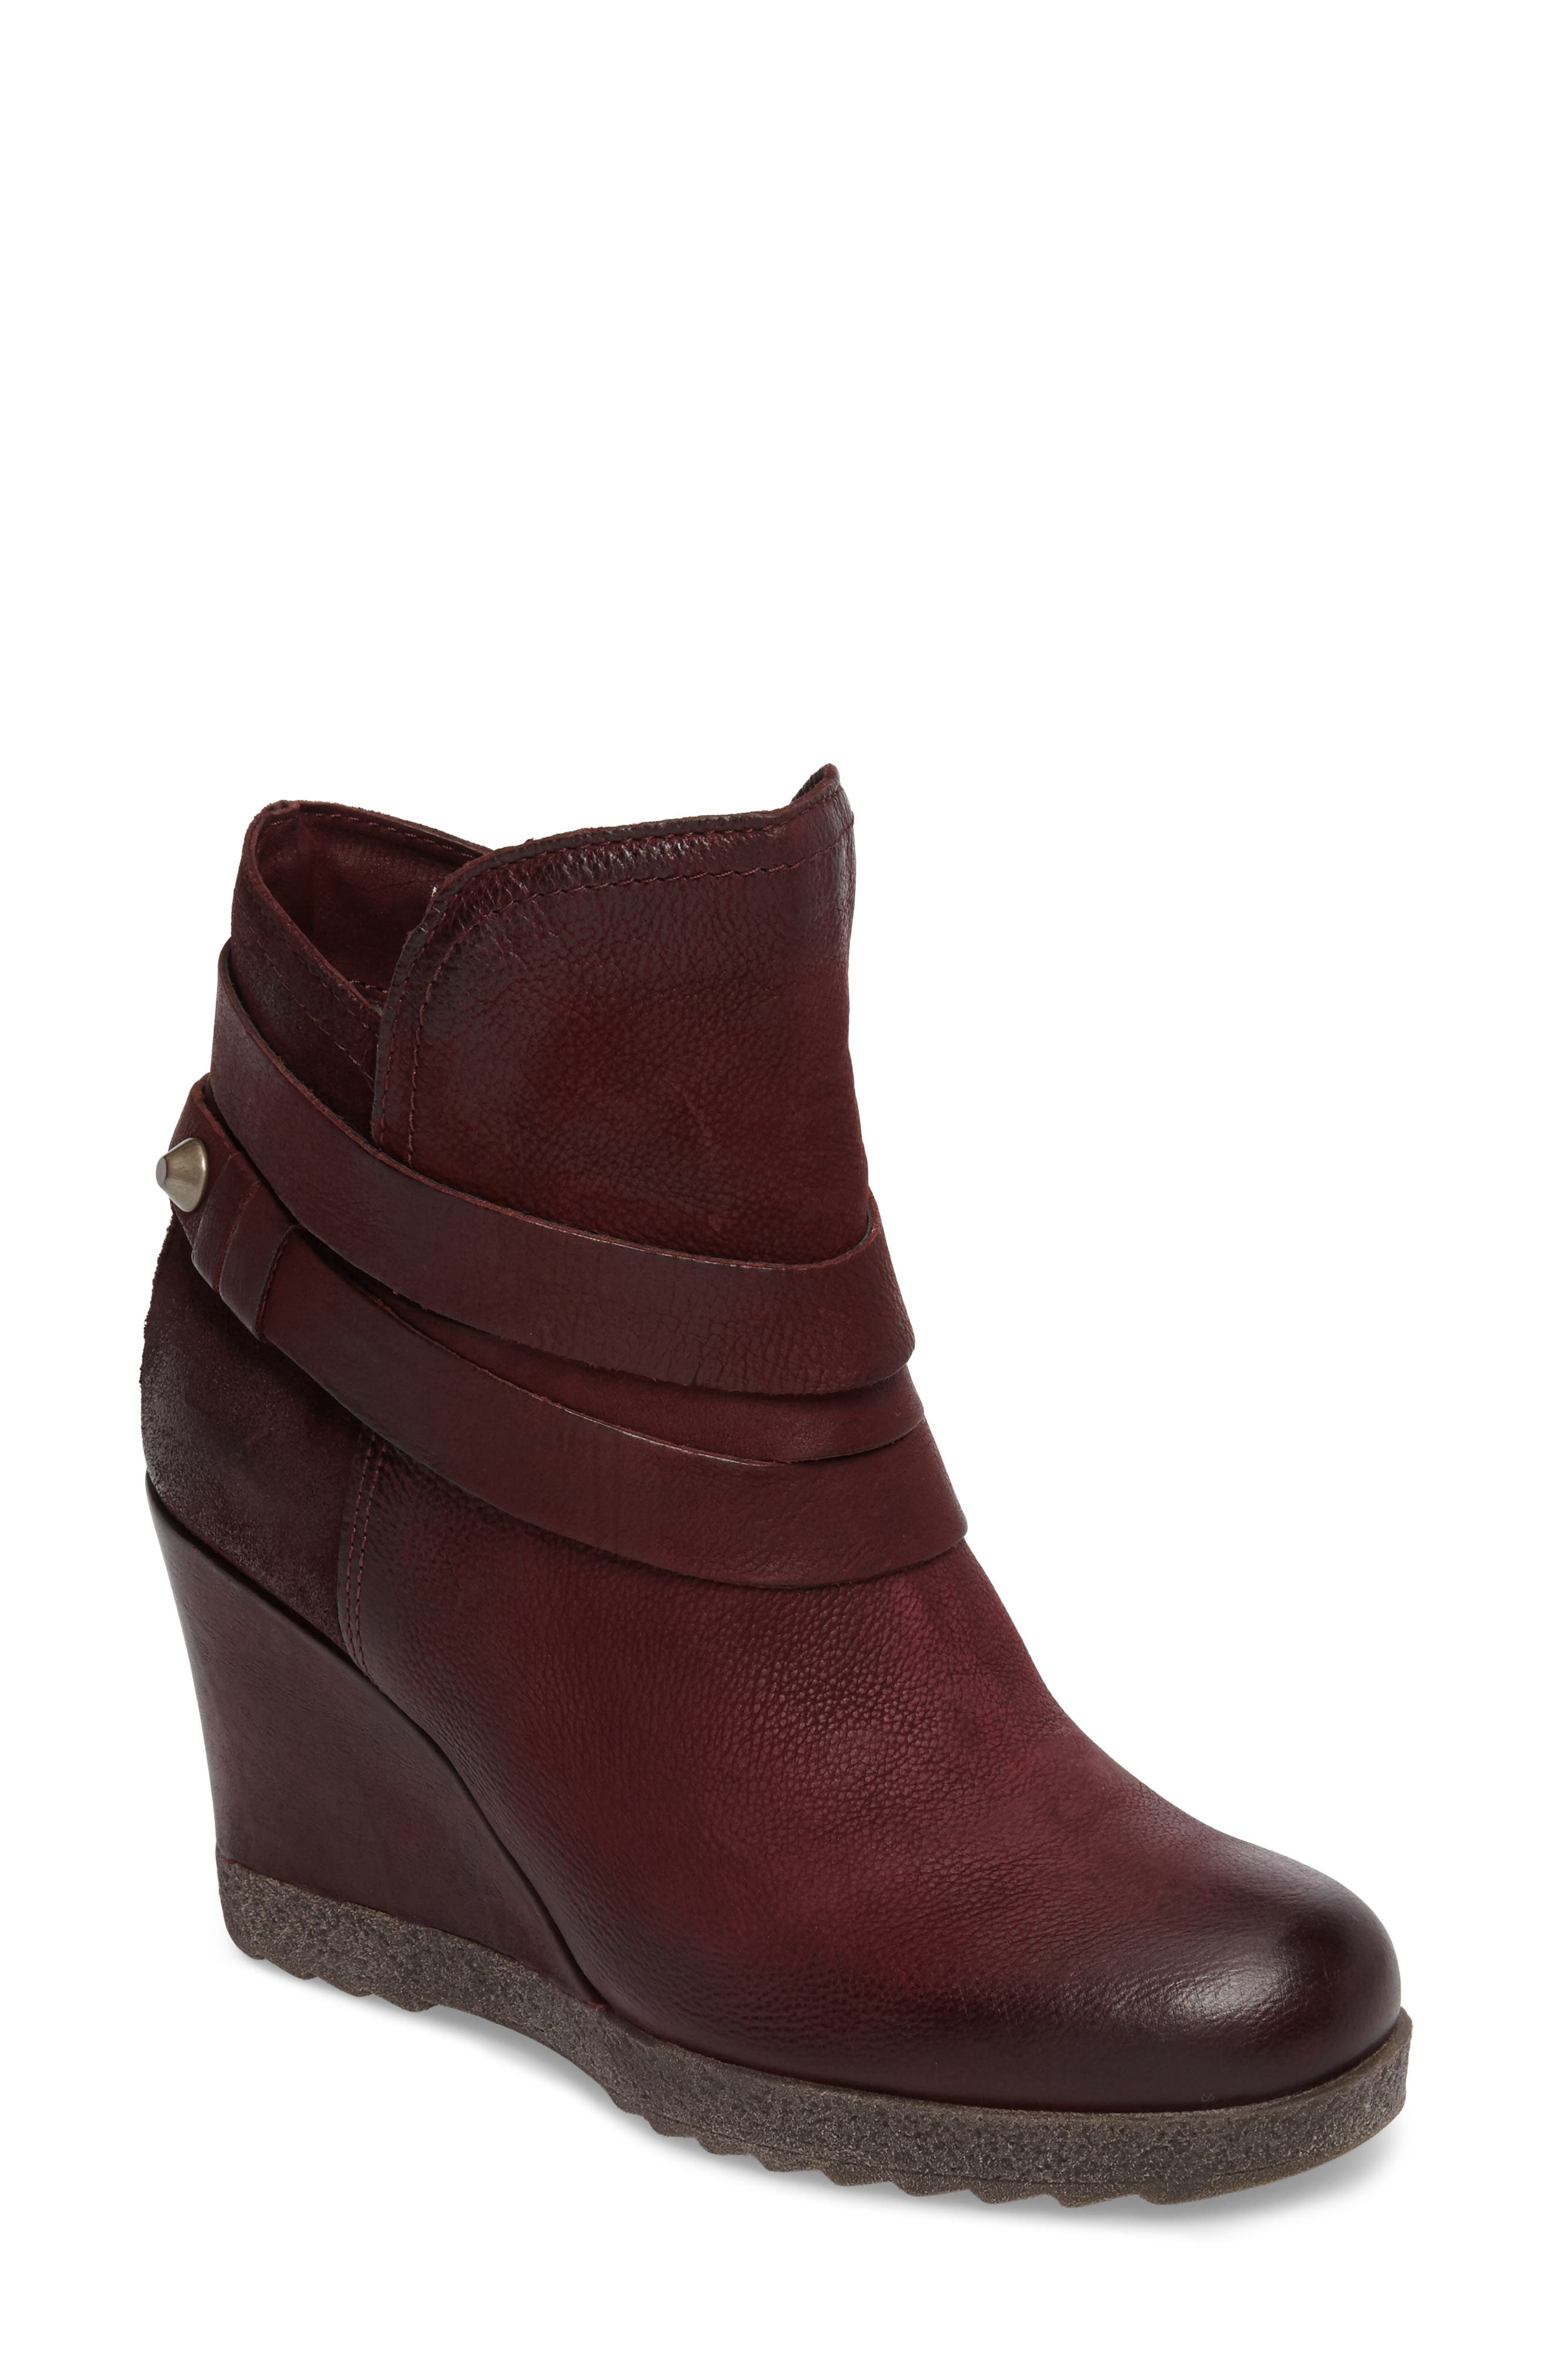 Narcissa Ankle Wrap Wedge Bootie,                         Main,                         color, Eggplant